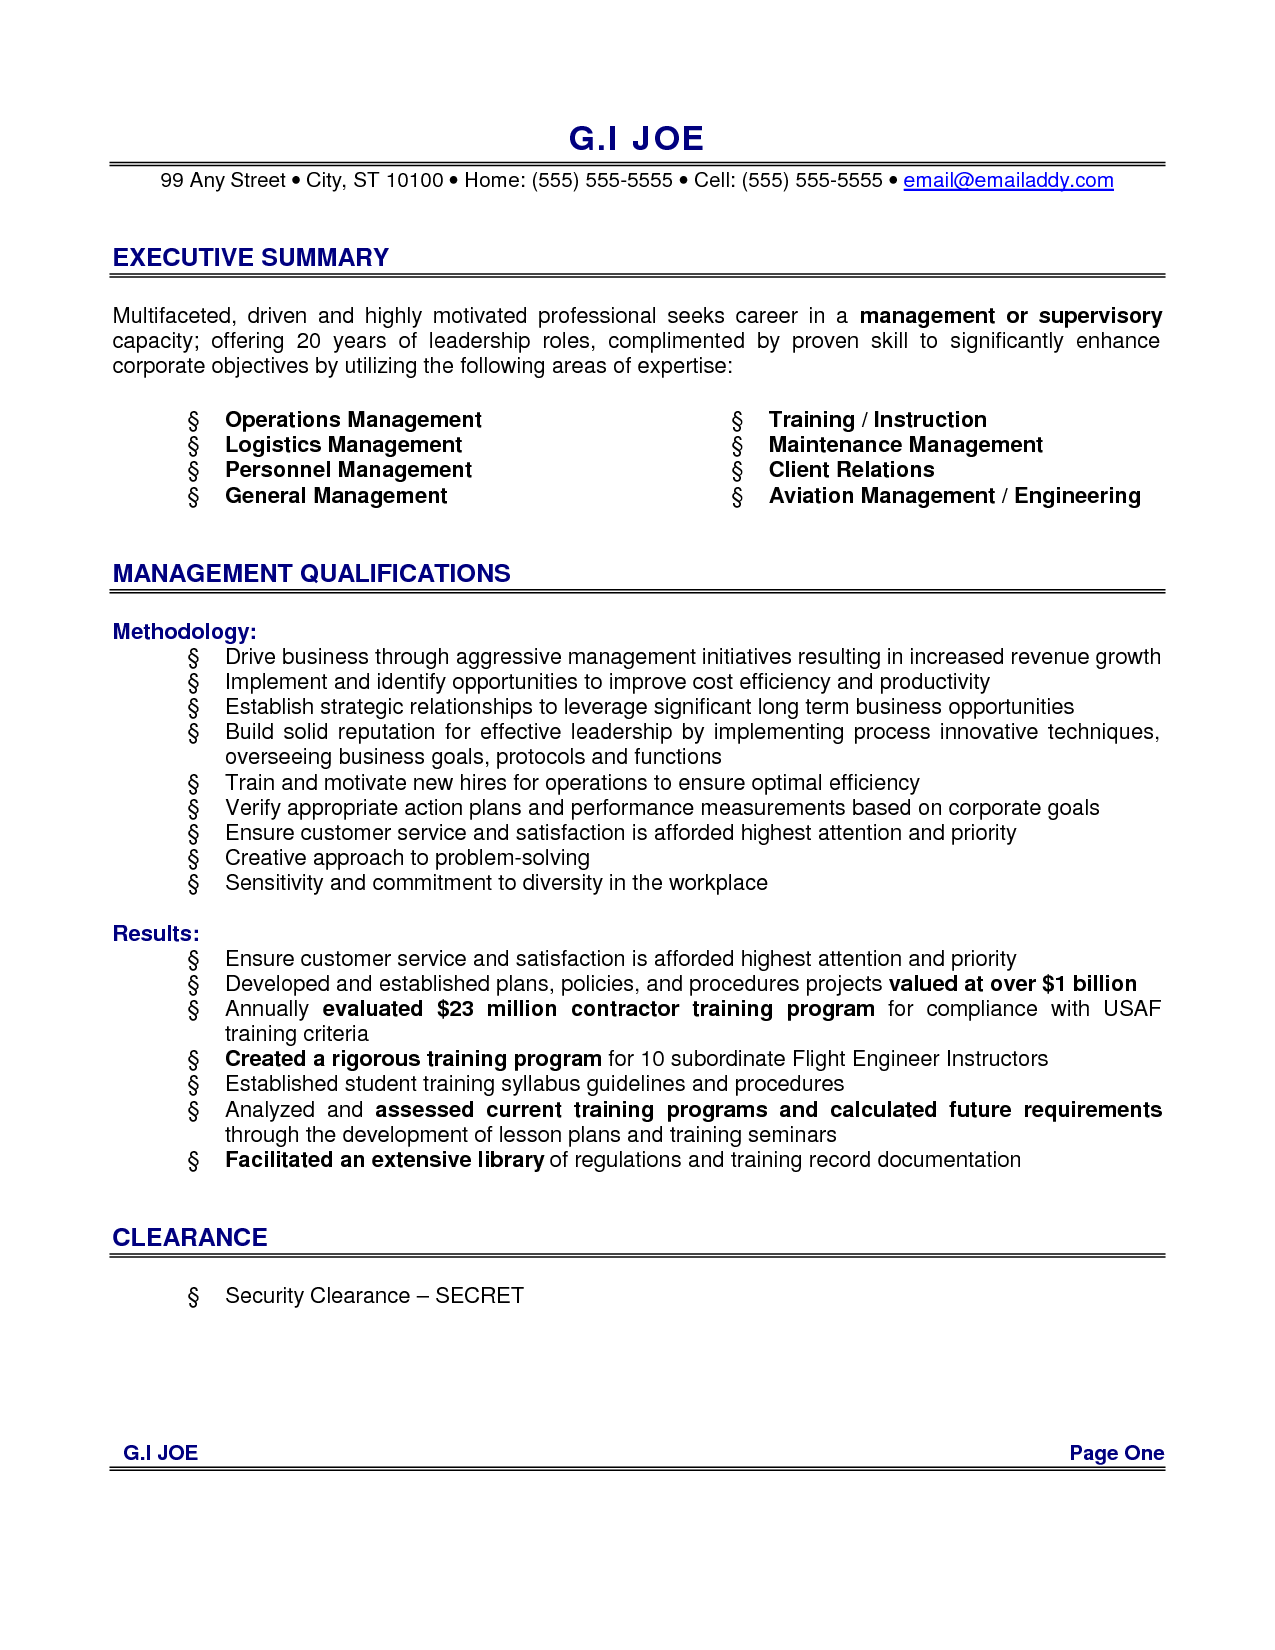 Resume Executive Summary in 2020 Resume summary examples